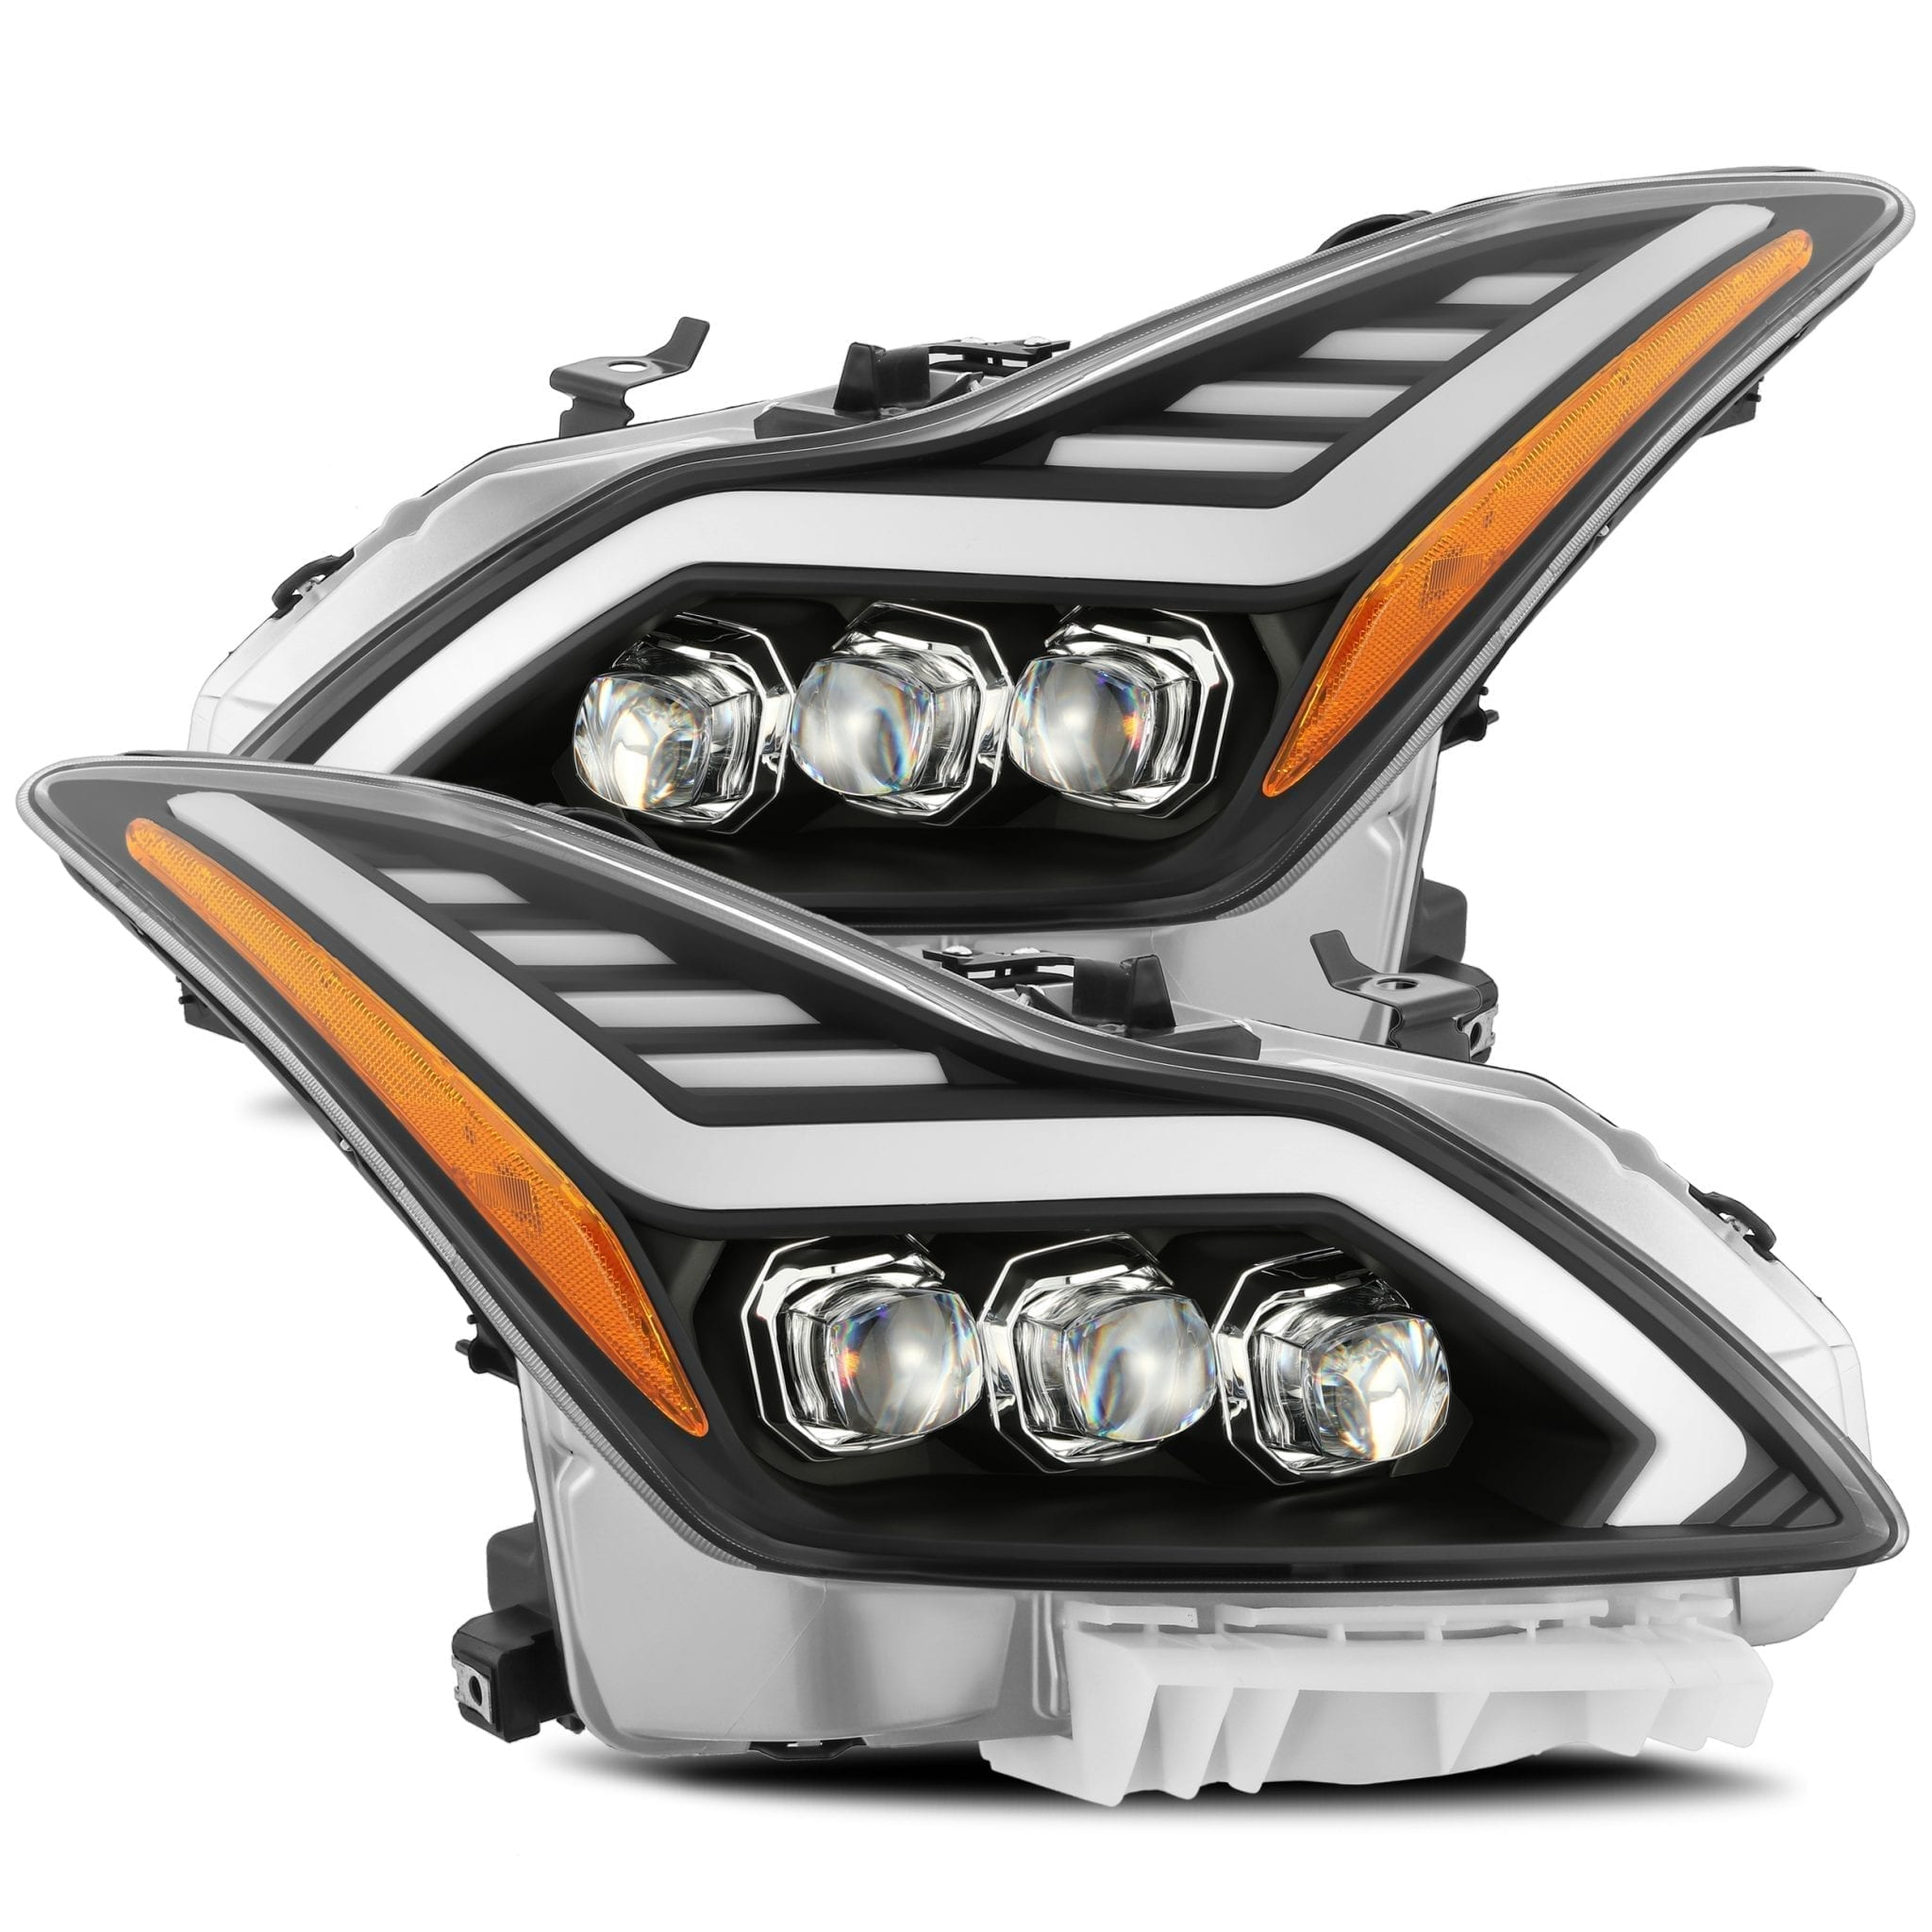 08 15 Infiniti G37 Q60 Nova Series Projector Headlights Black